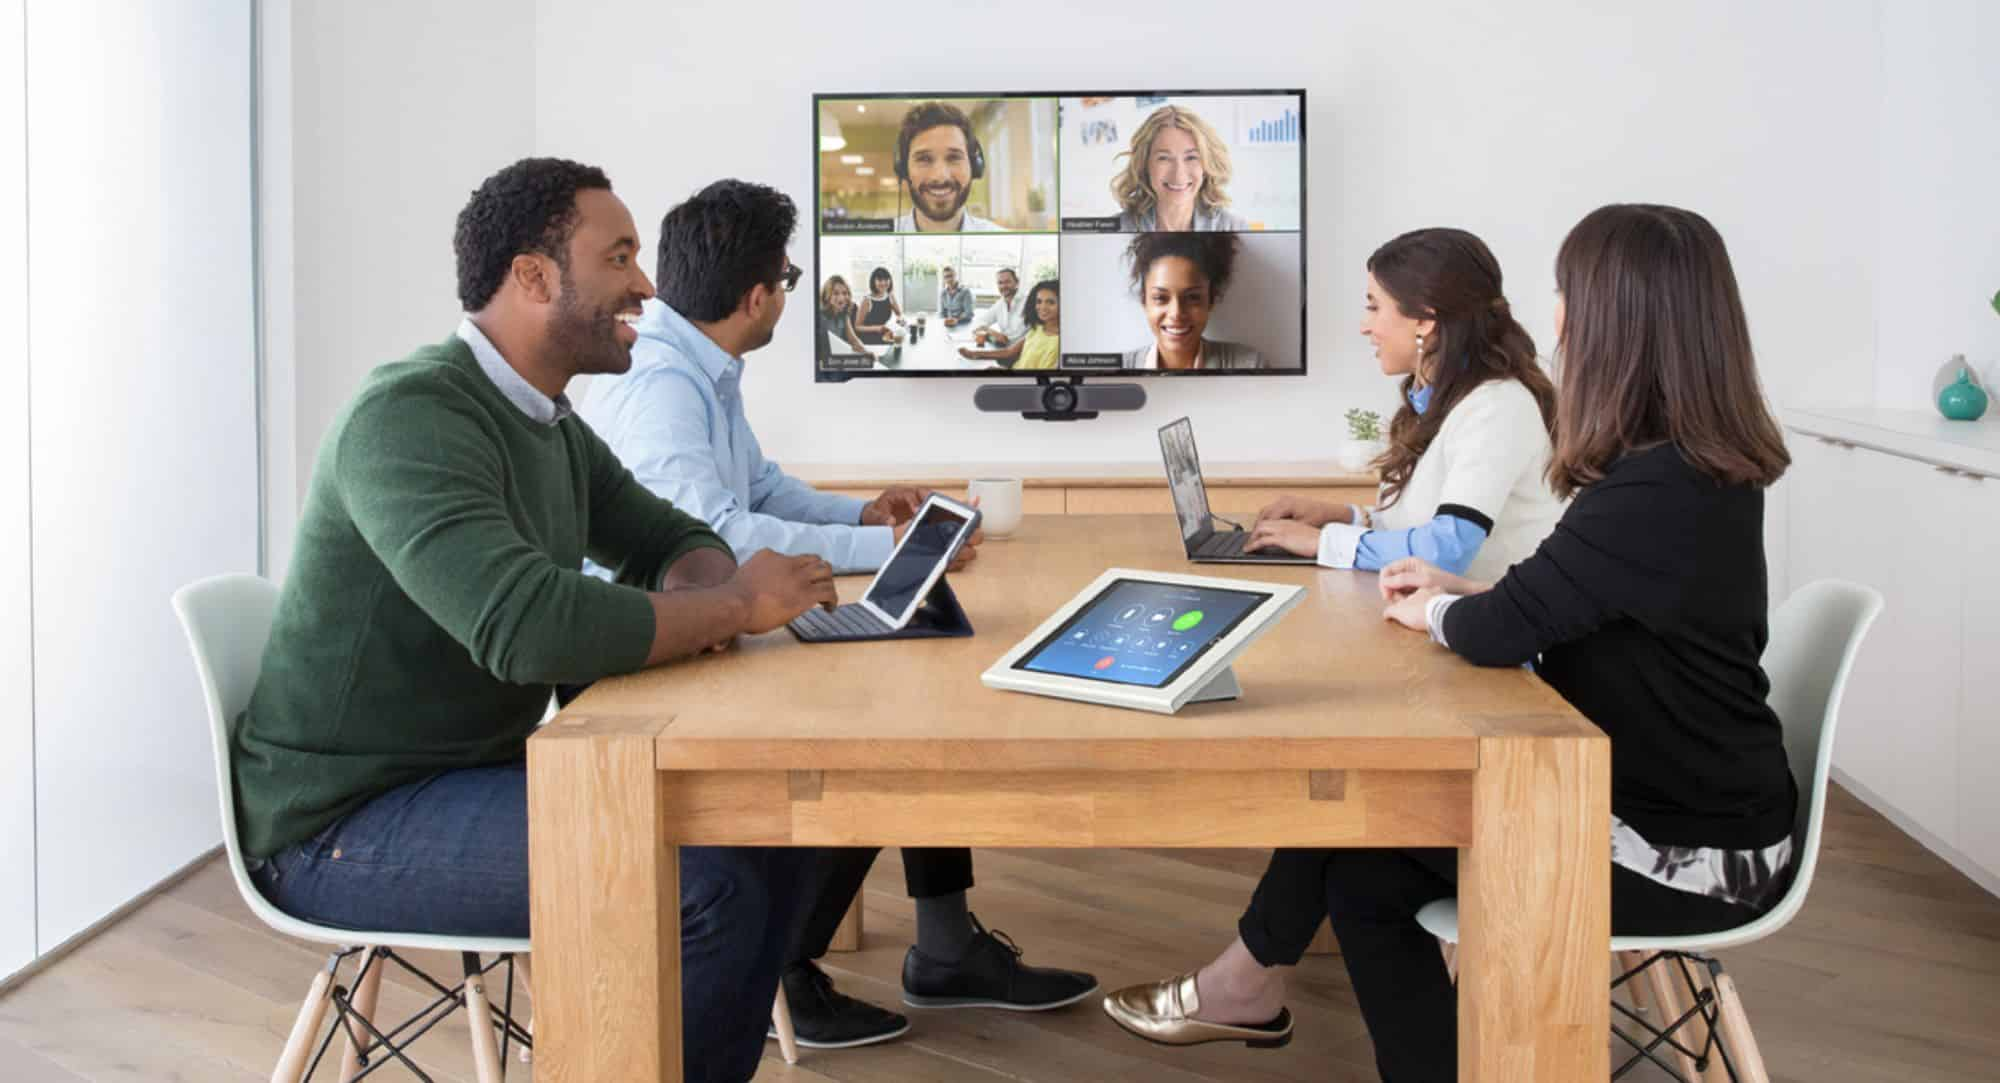 Two Easy Ways to Turn Any Meeting Space into a Zoom Room